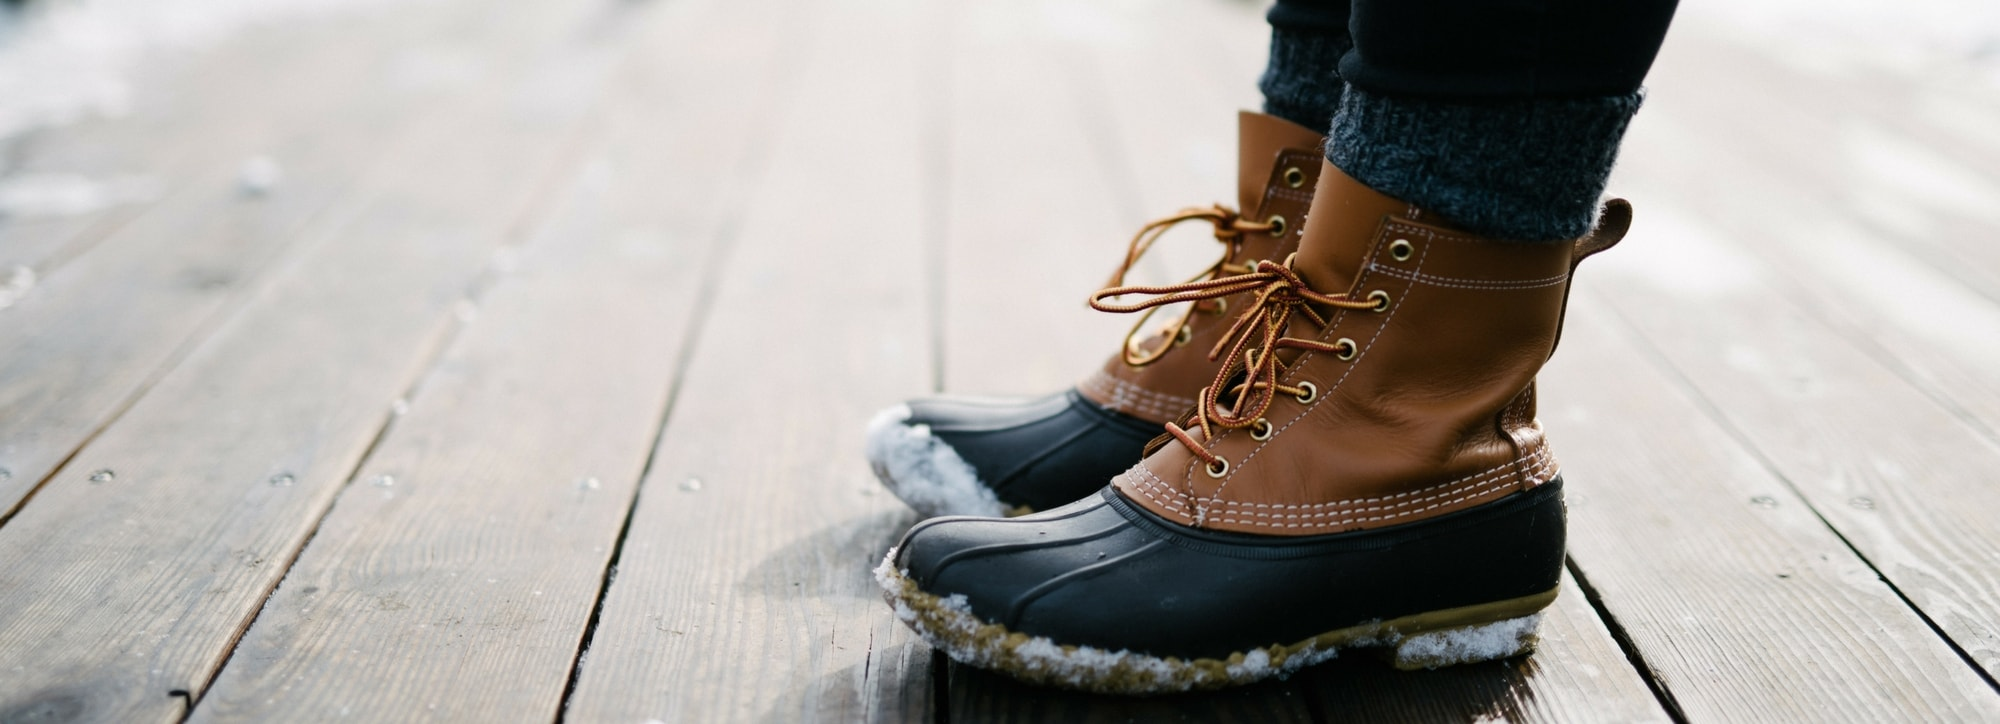 5 Stylish & Sustainable Autumn/Winter Boots